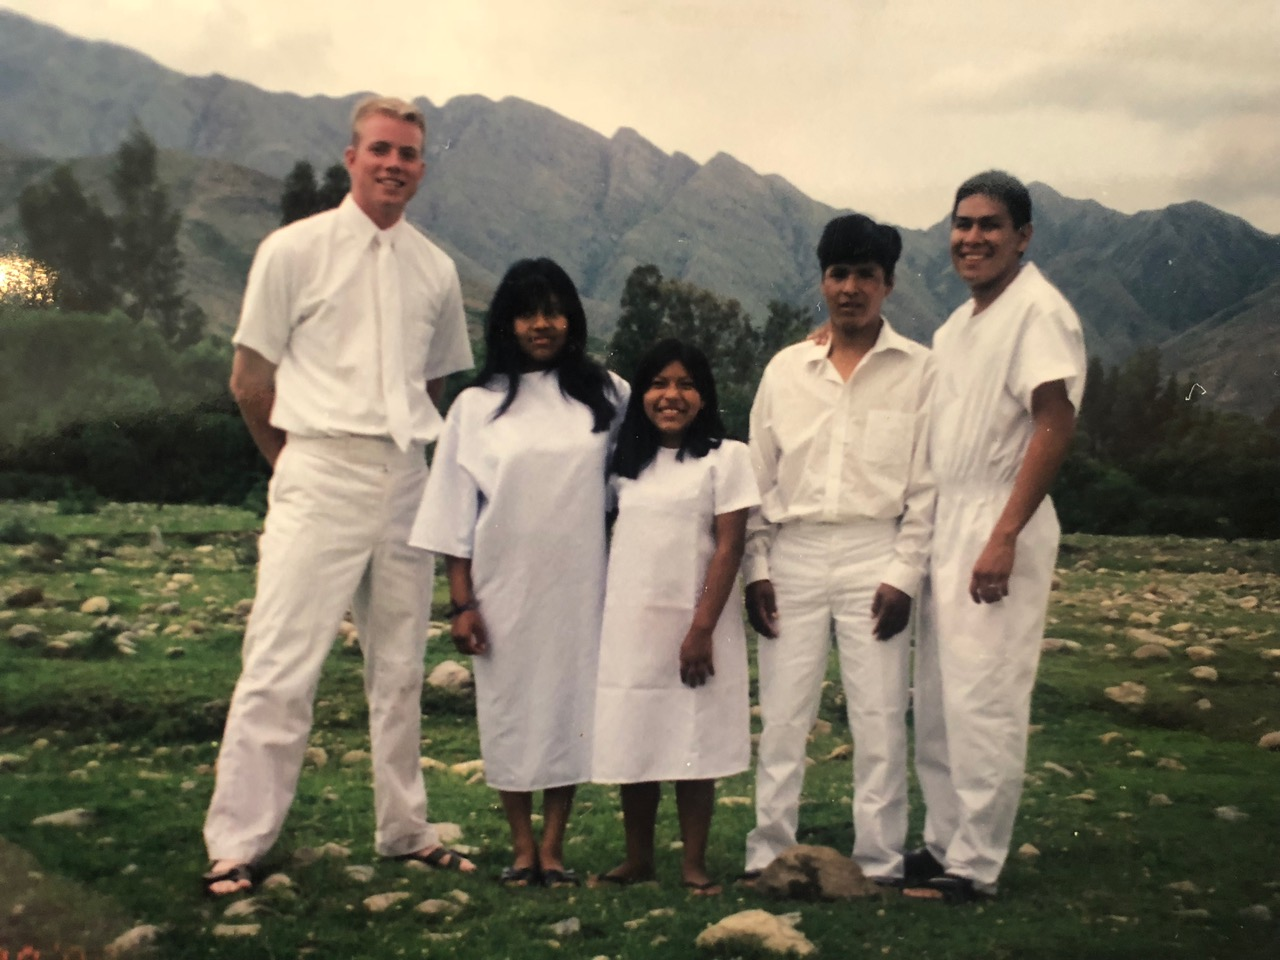 Davis Smith and his companion Elder Dustin Harris at a baptism for some relatives of Naval Sanchez, who joined the Church shortly before Smith was transferred to his area 20 years ago. Many of Naval Sanchez's family members followed his example and joined the Church.